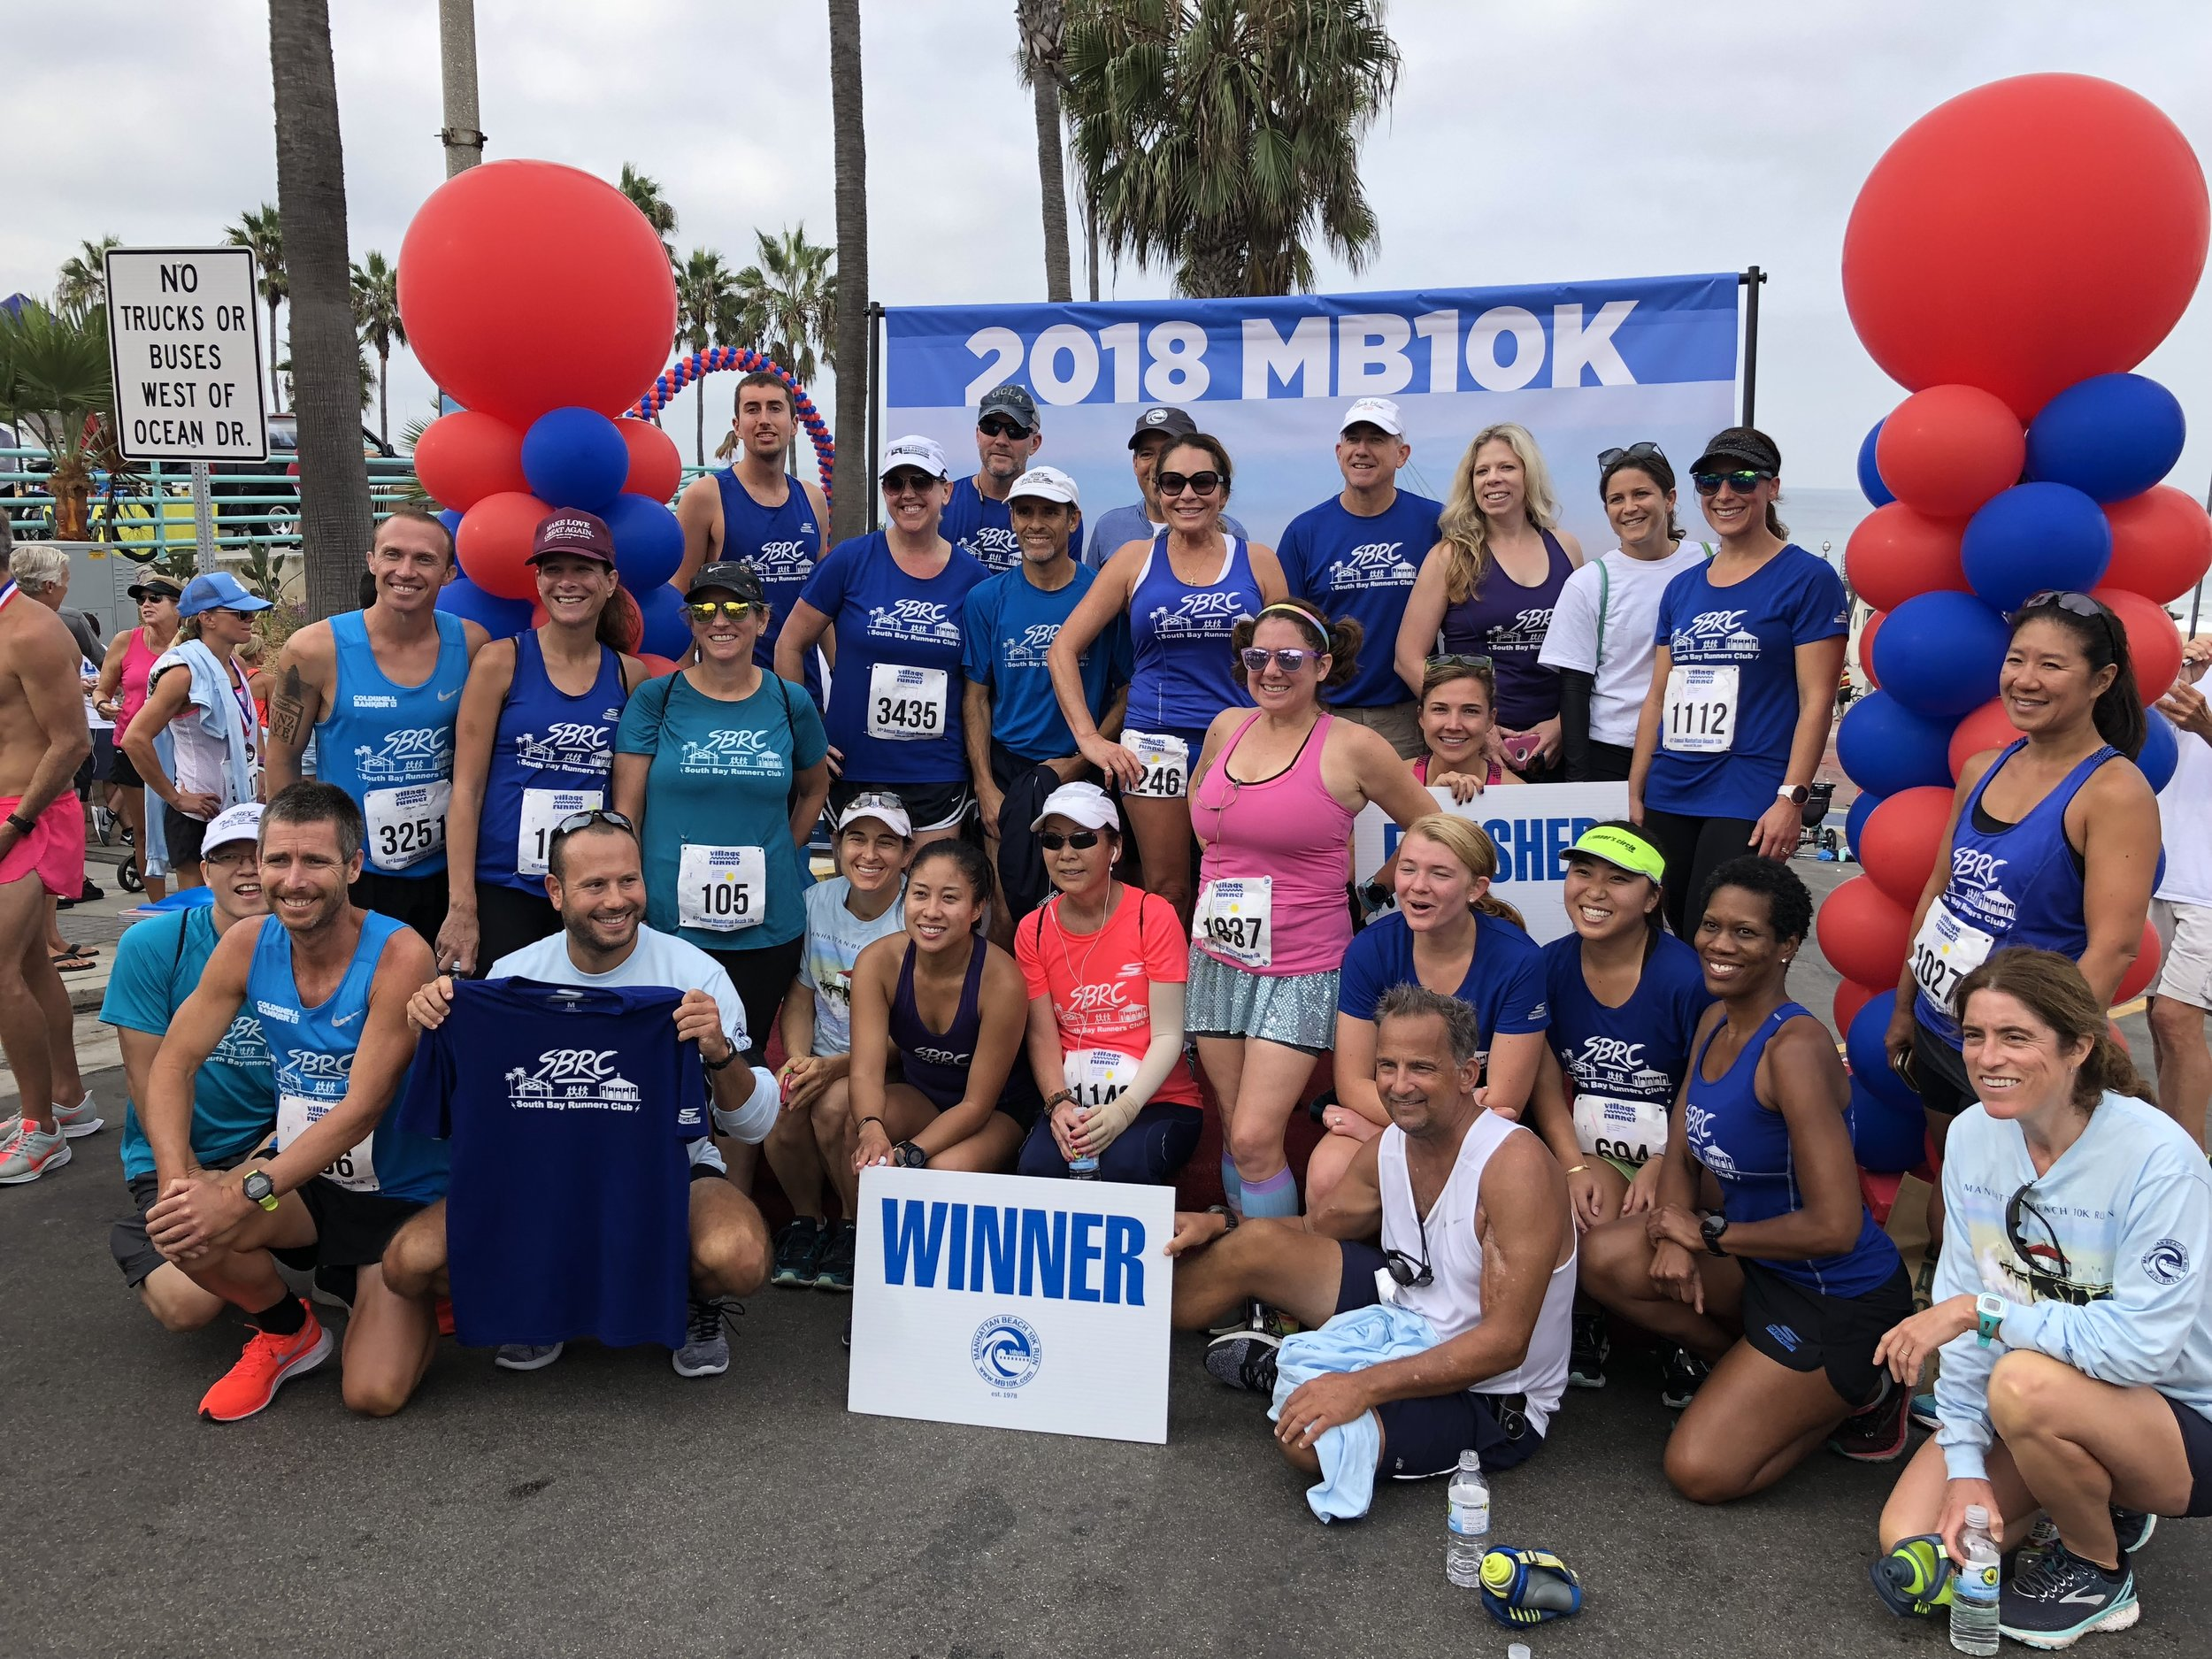 South Bay Runners Club members at 2018 Manhattan Beach 10k Awards podium.